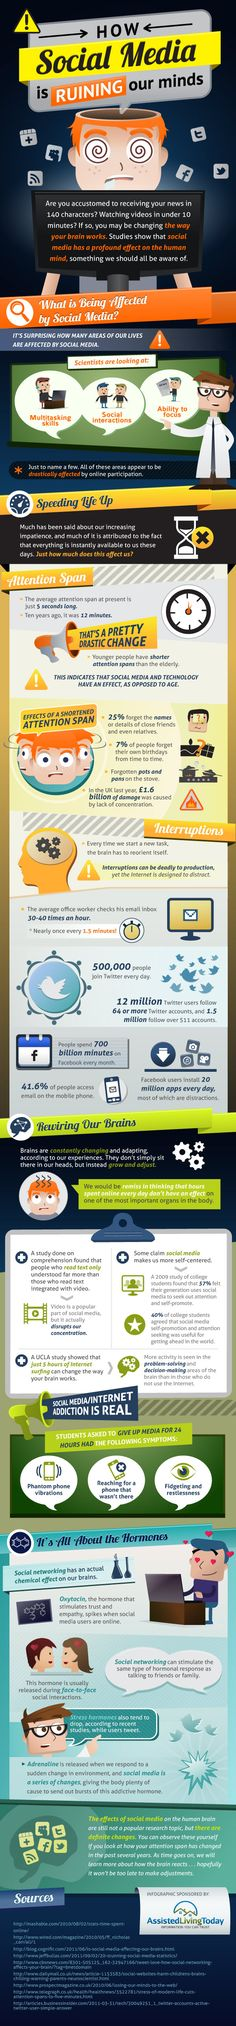 Are we poisoning our minds with social media? #socialmedia #infographic